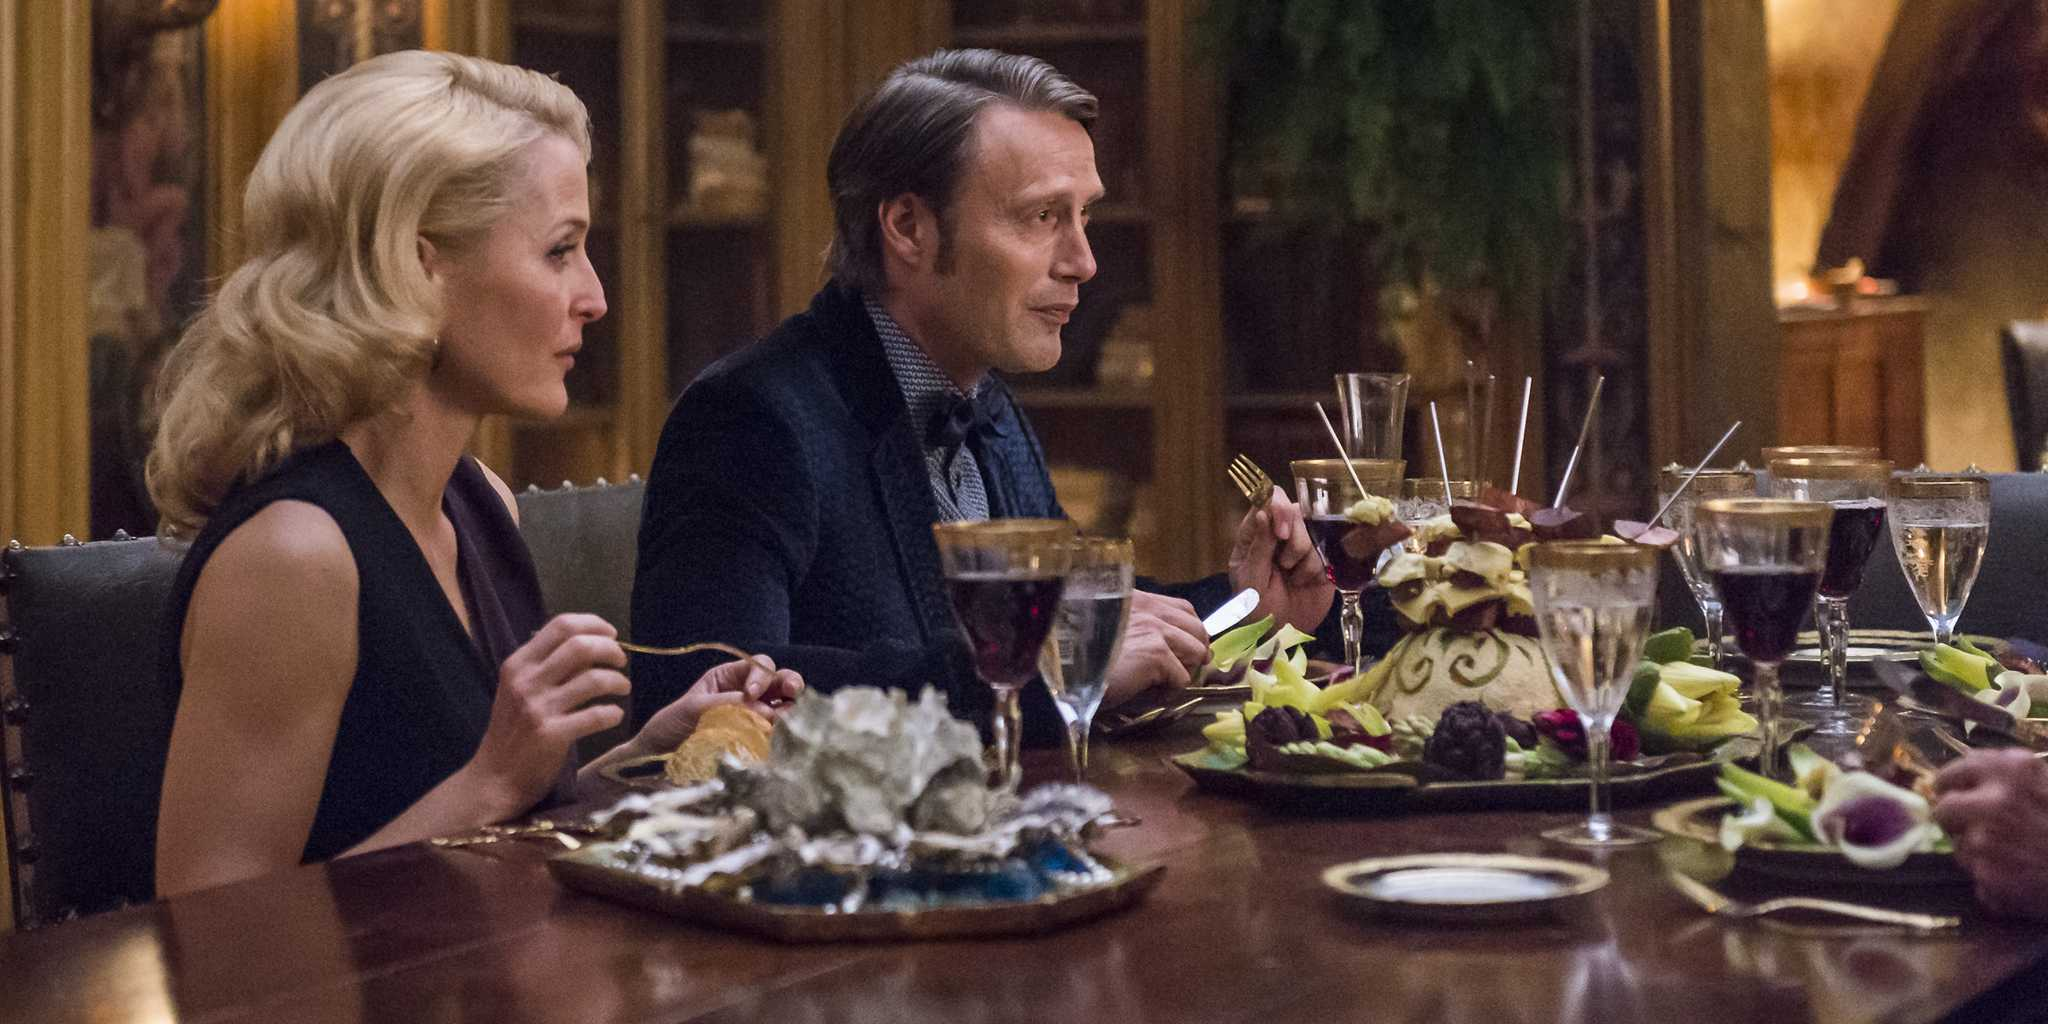 Hannibal Inspired Fans To Turn Cannibalistic Art Into